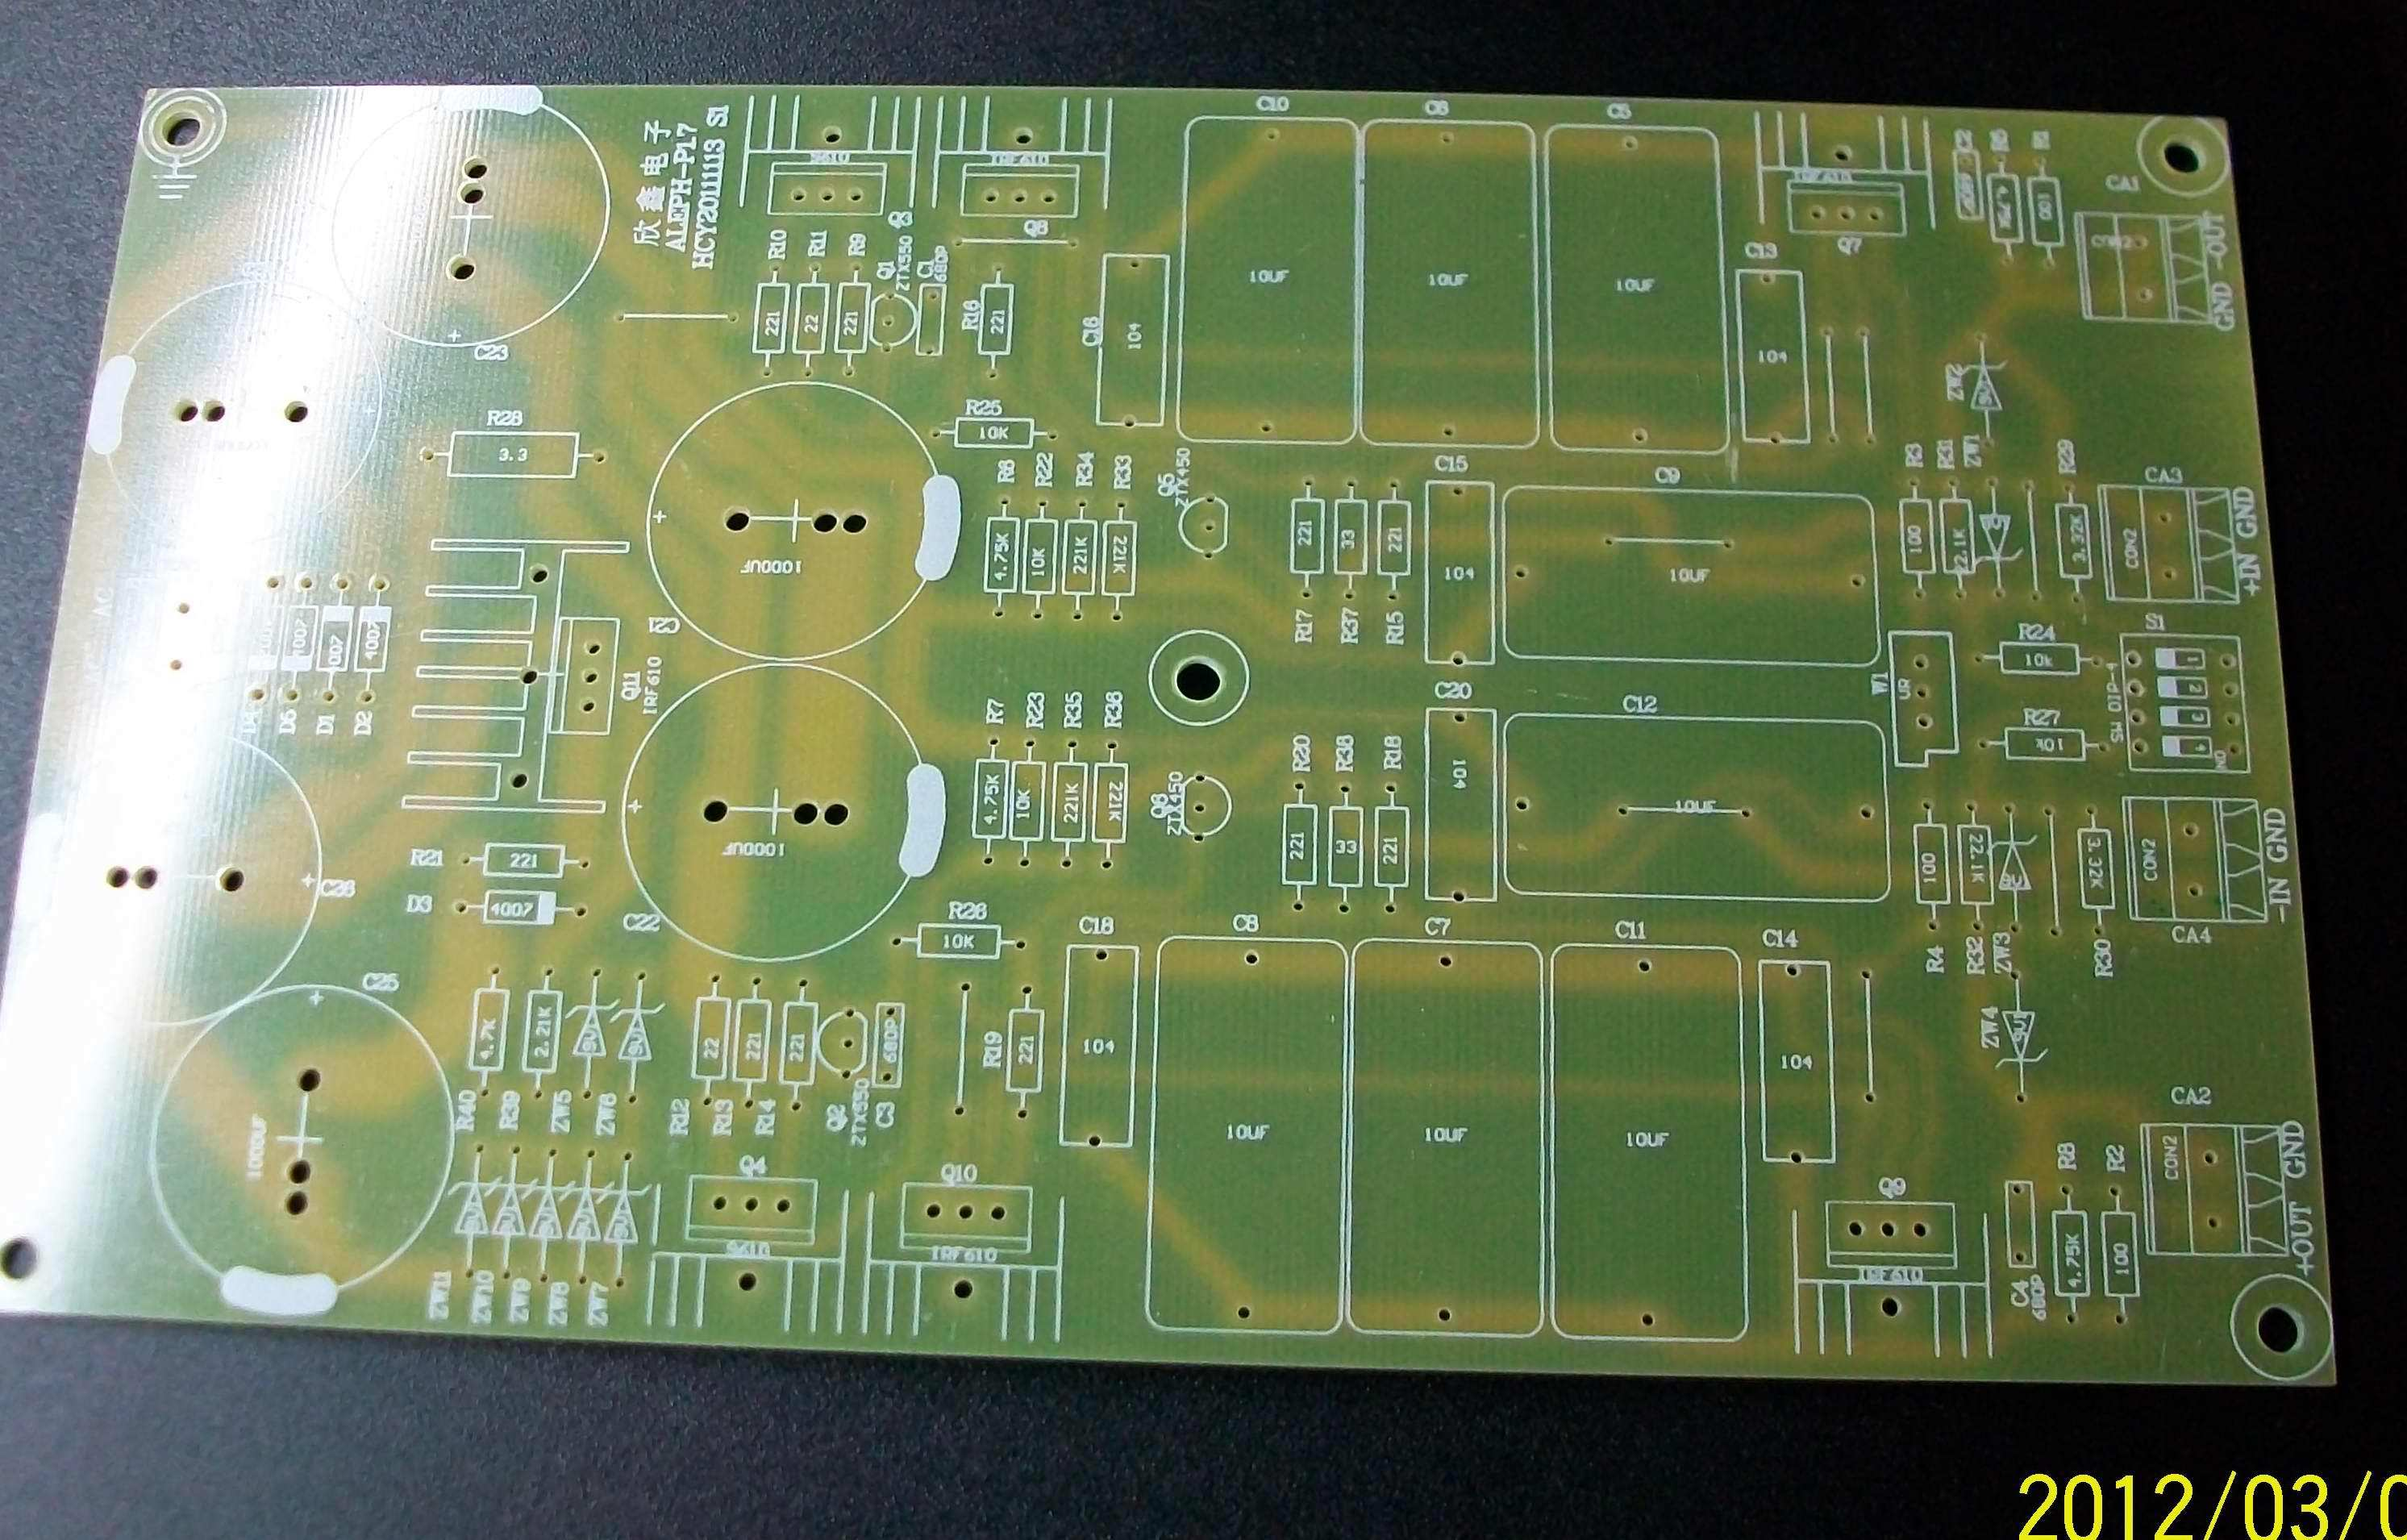 Pass Aleph P Preamp Rev 17 Fully Balanced Pcb Board Fever Alephx 100w Amplifier Construction Notes Loading Zoom